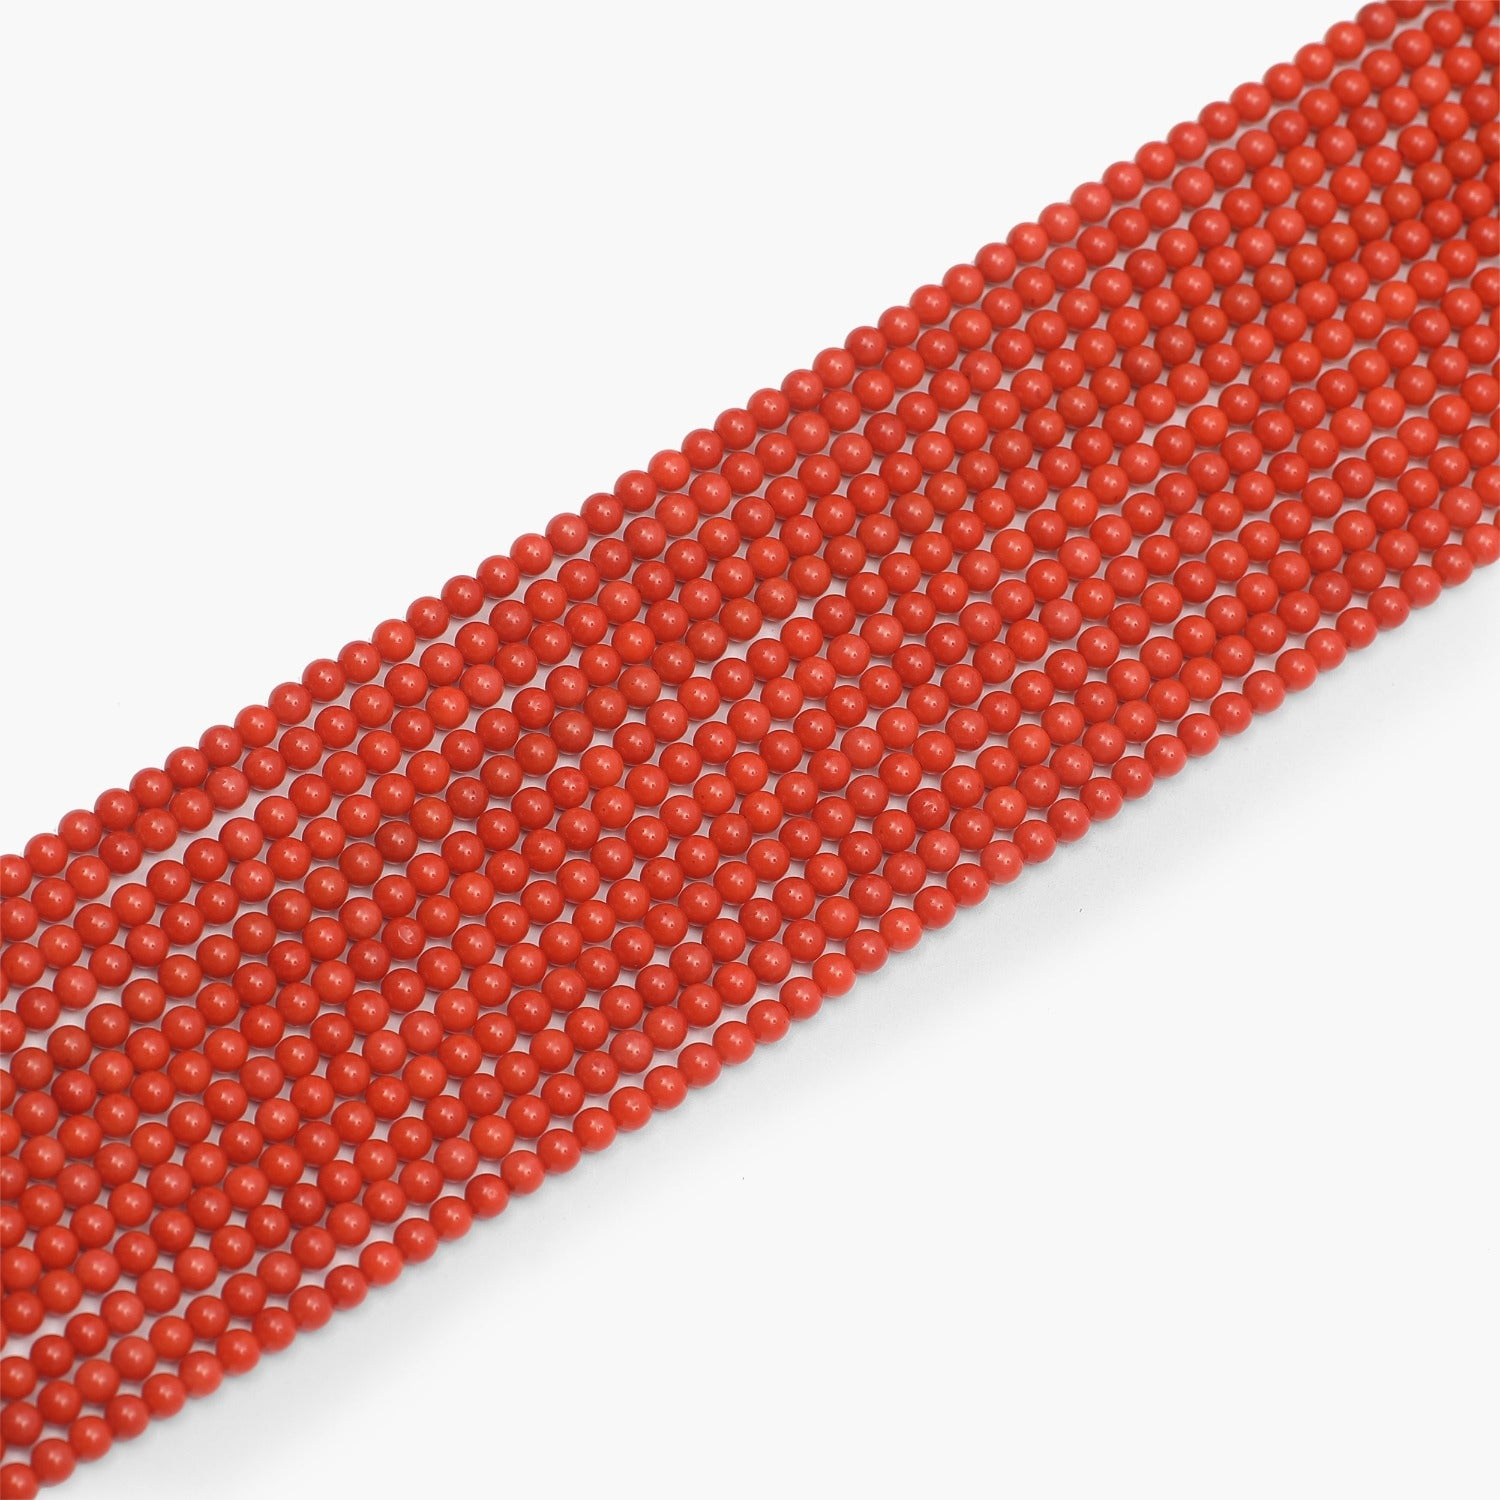 Taiwan Red Coral Semi Precious Gemstone Beads 4.5mm- Sold Per Strand